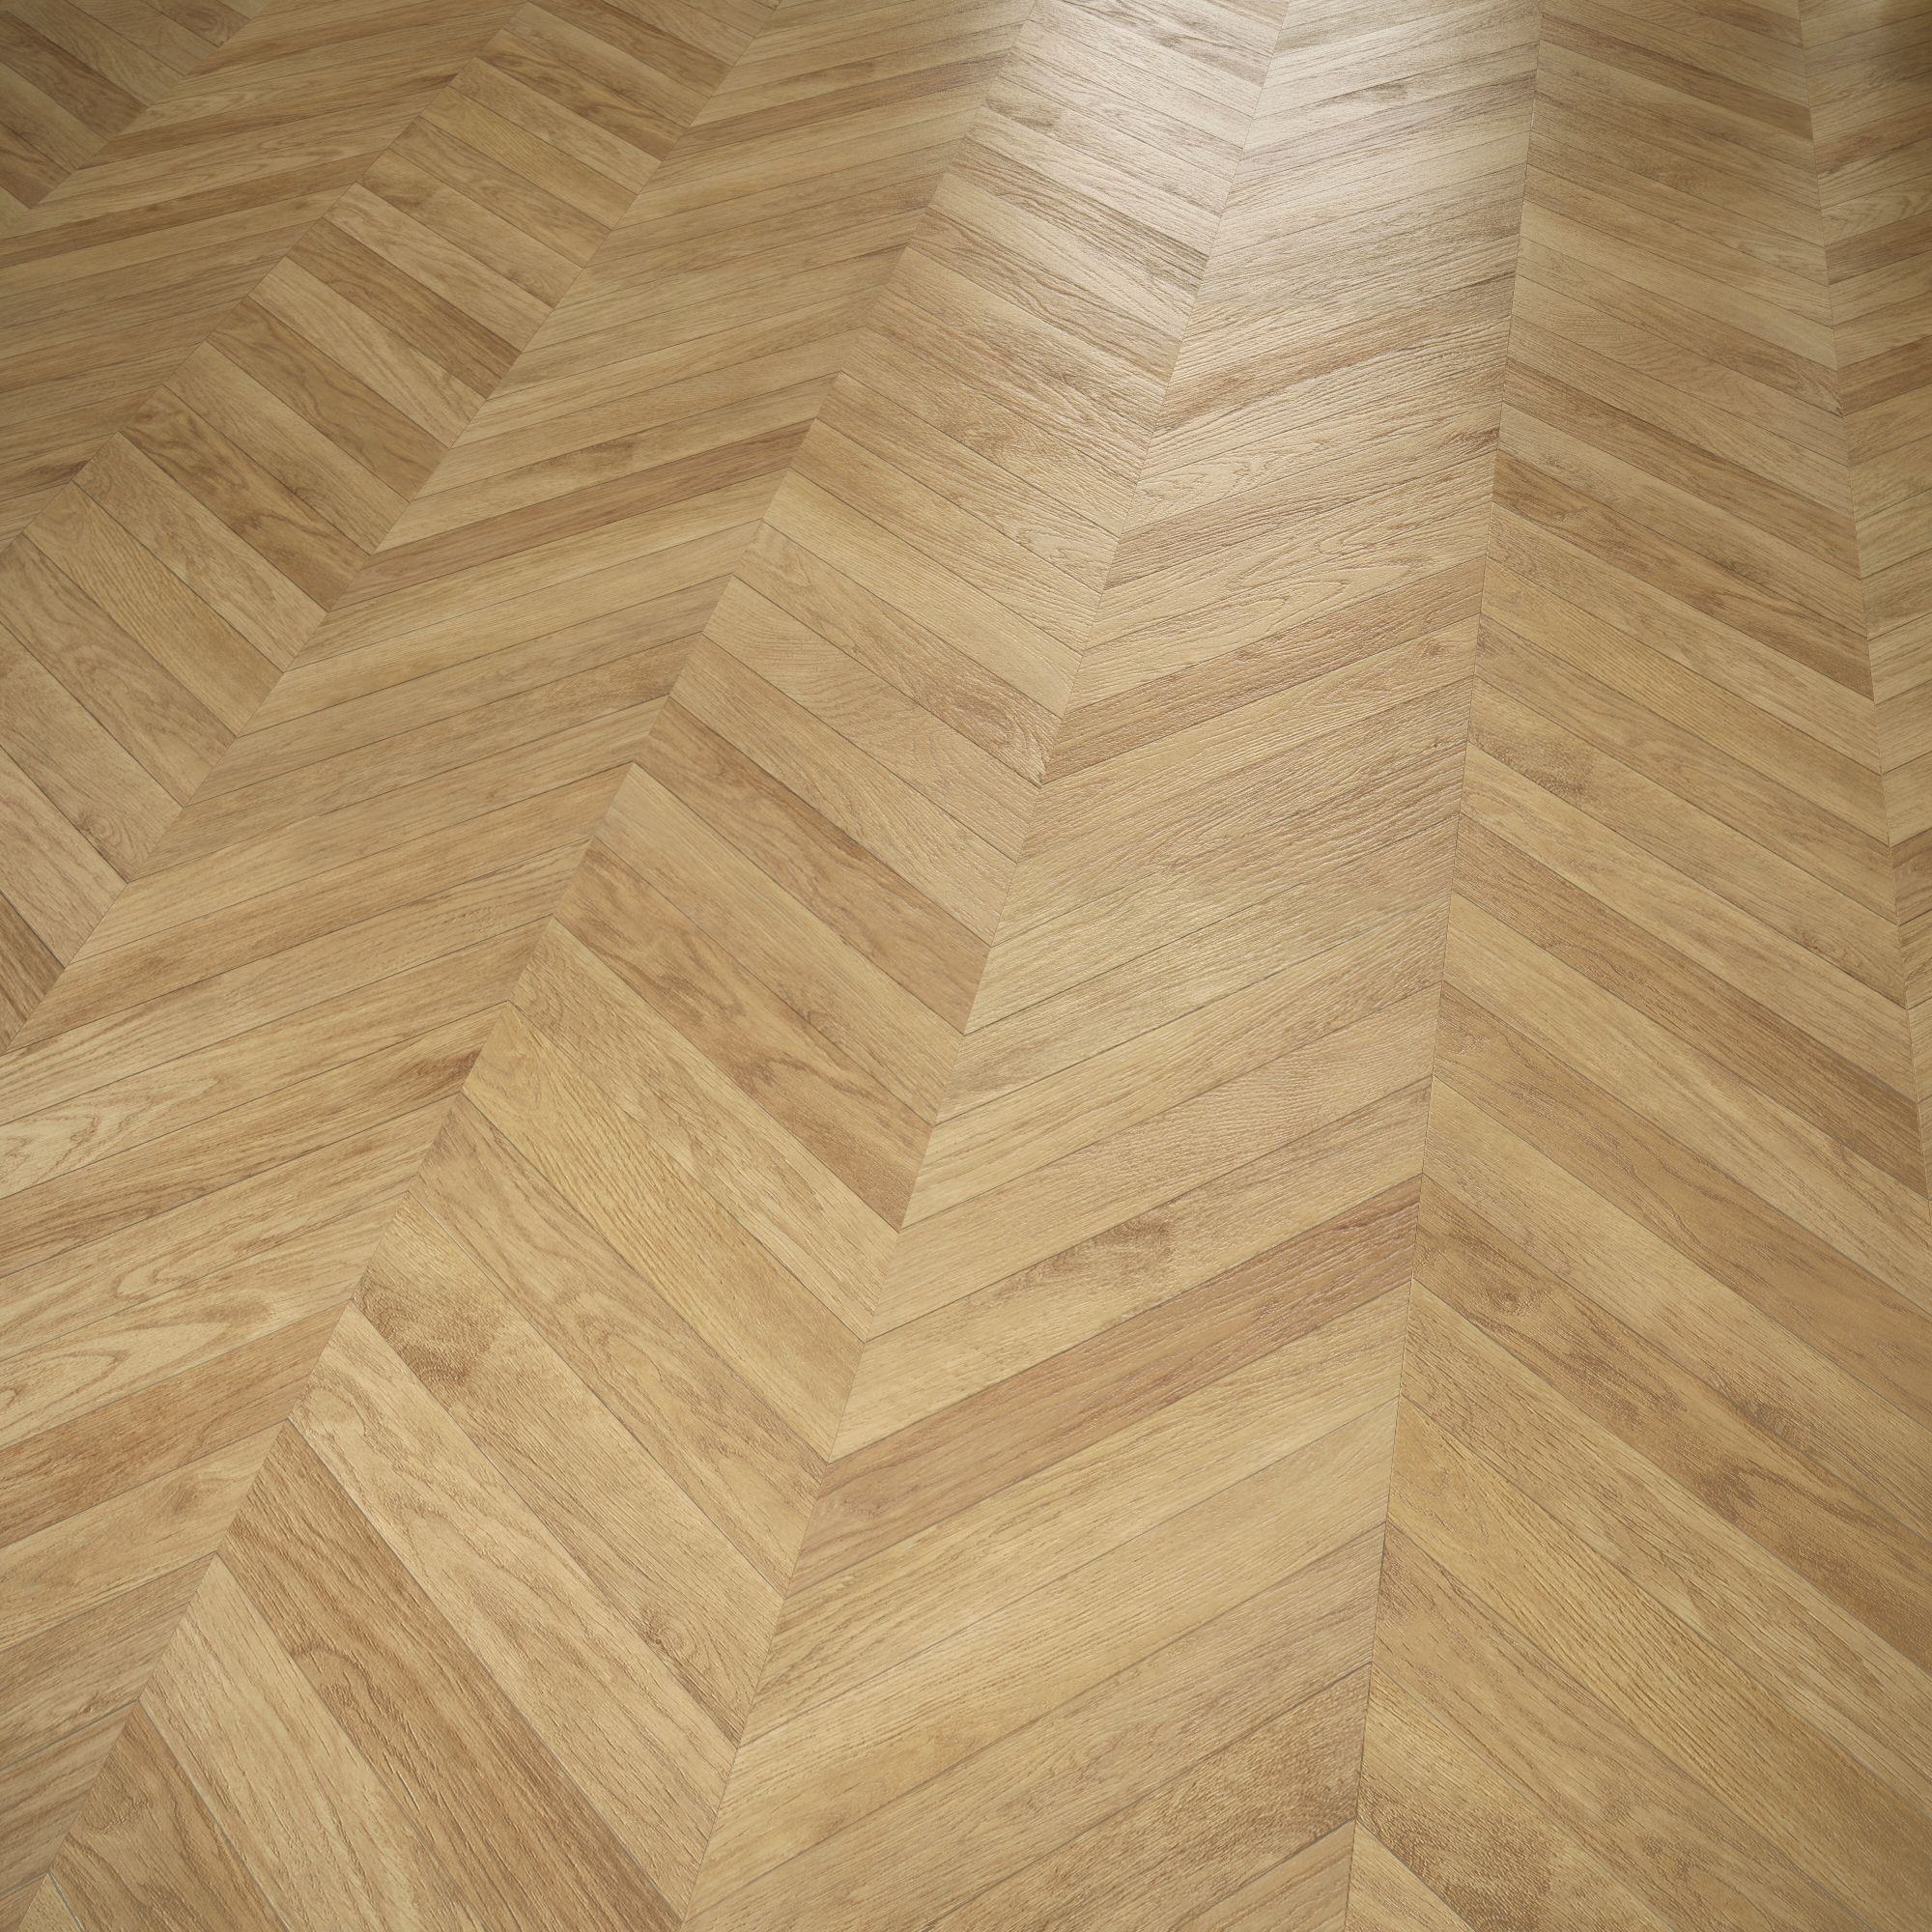 kitchen laminate flooring Colours Alessano Parquet Herringbone Oak Effect Laminate Flooring 1 39 m Departments DIY at B